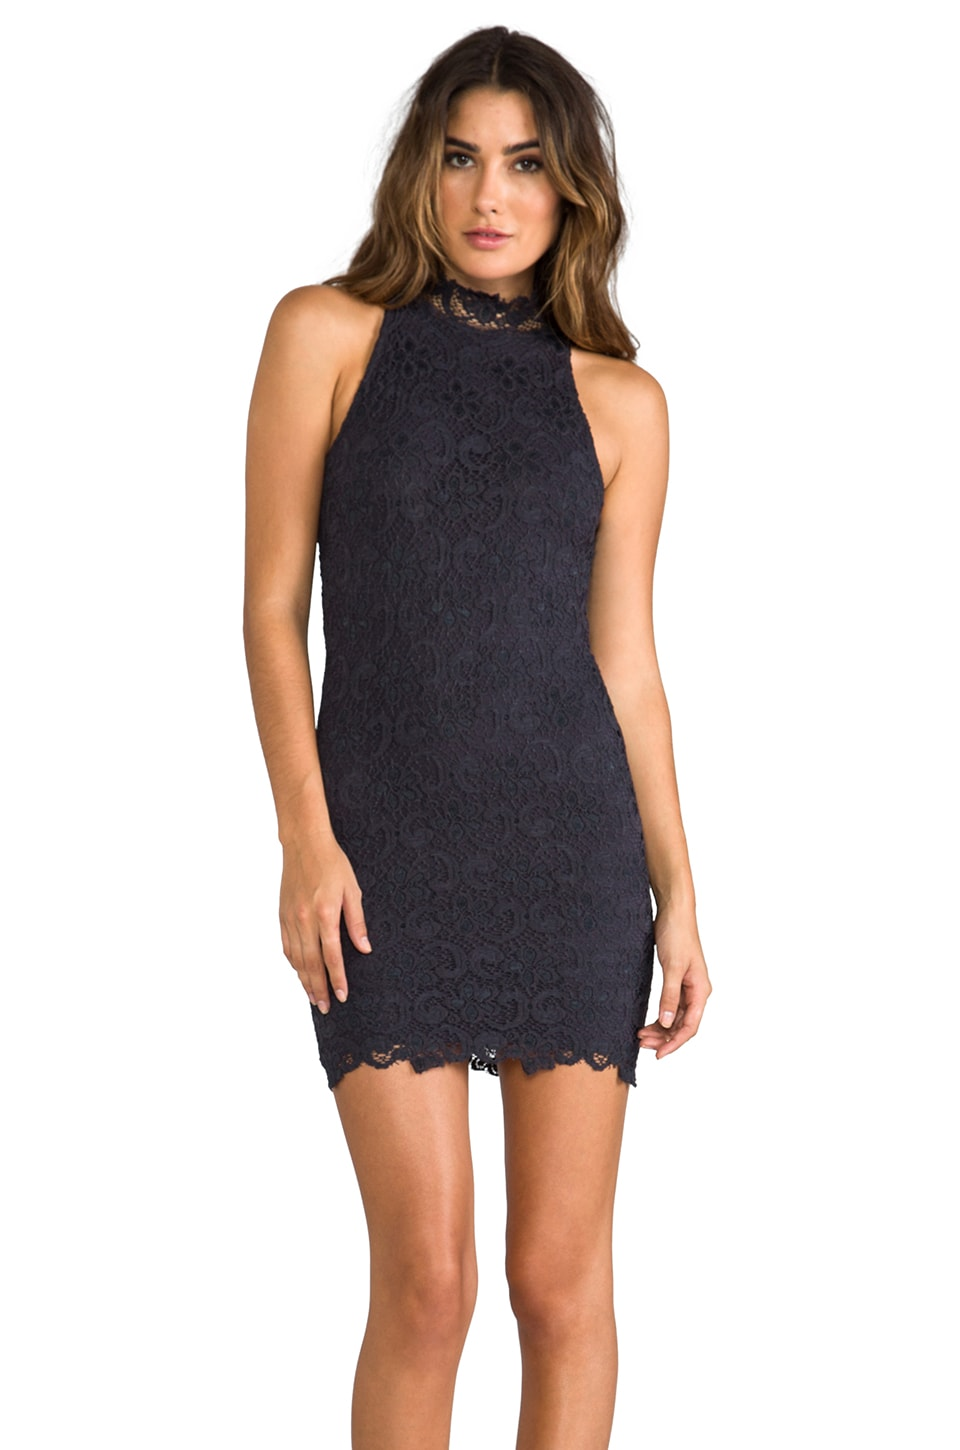 Nightcap Dixie Lace Halter Dress in Charcoal